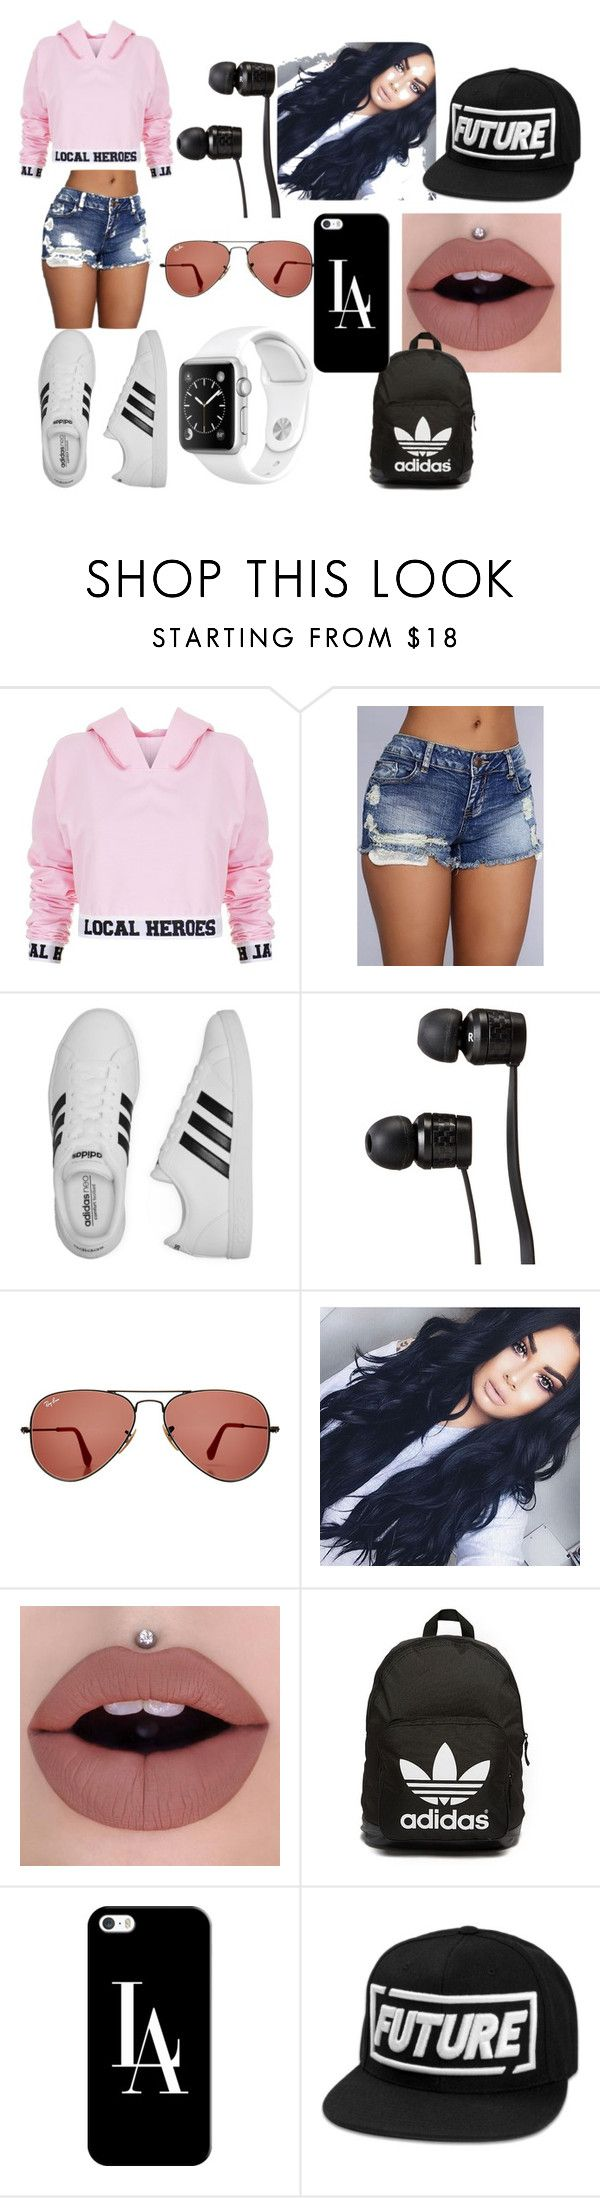 """local heroes"" by royalty-fashion-love-gymnastics ❤ liked on Polyvore featuring Local Heroes, adidas, Vans, Ray-Ban, adidas Originals and Casetify"